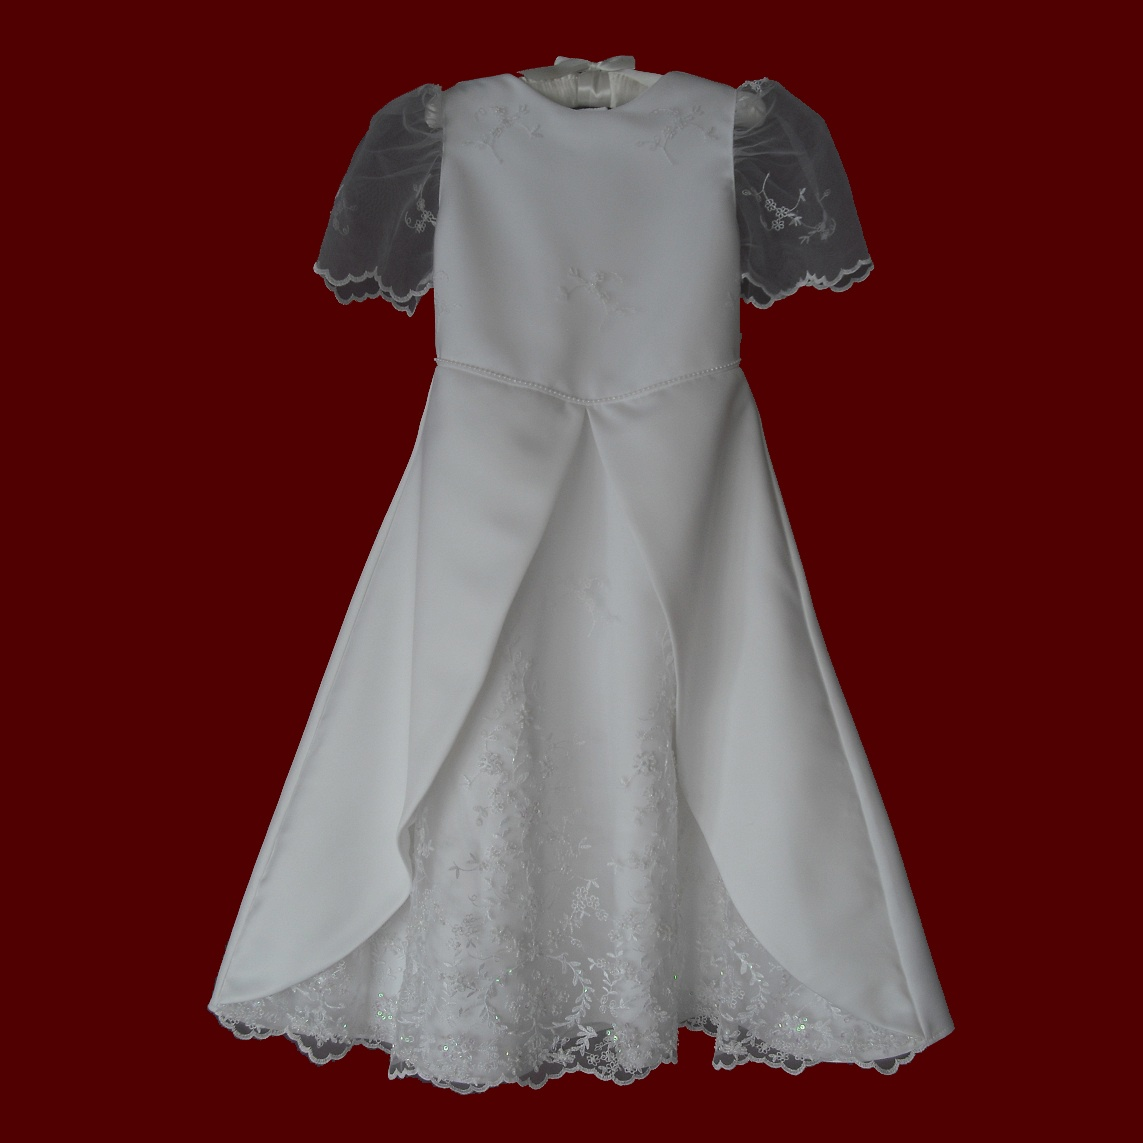 Beaded Netting & Peau de Soie Communion Dress